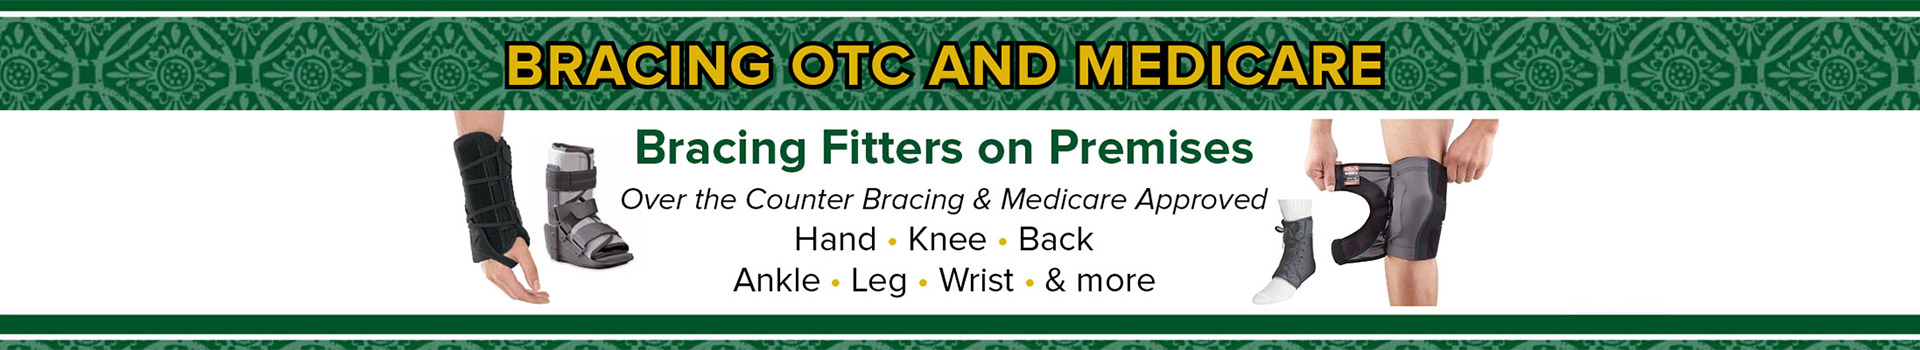 Bracing-and-Compression-OTC-and-Medicare-banner-1